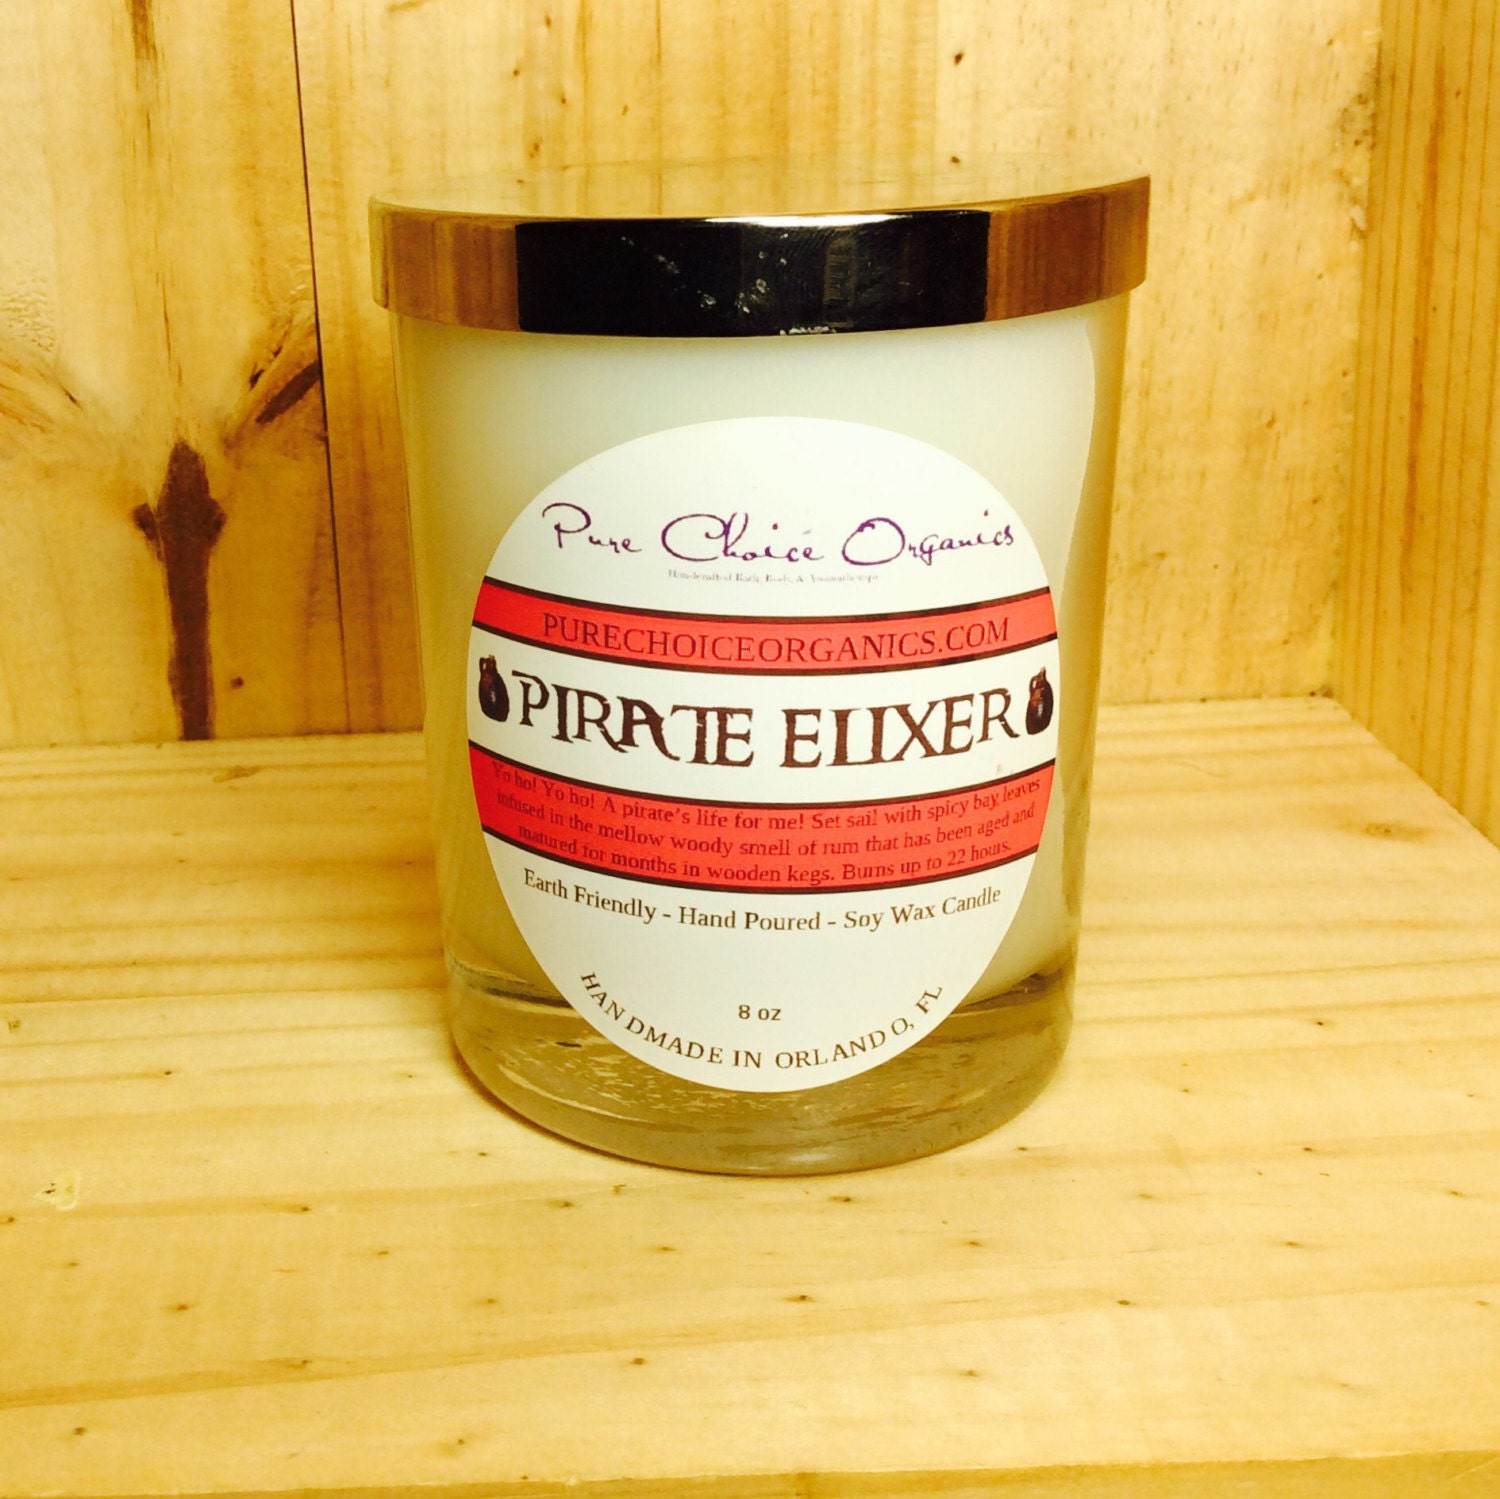 Pirate Elixir Soy Wax Candles Holiday Gift